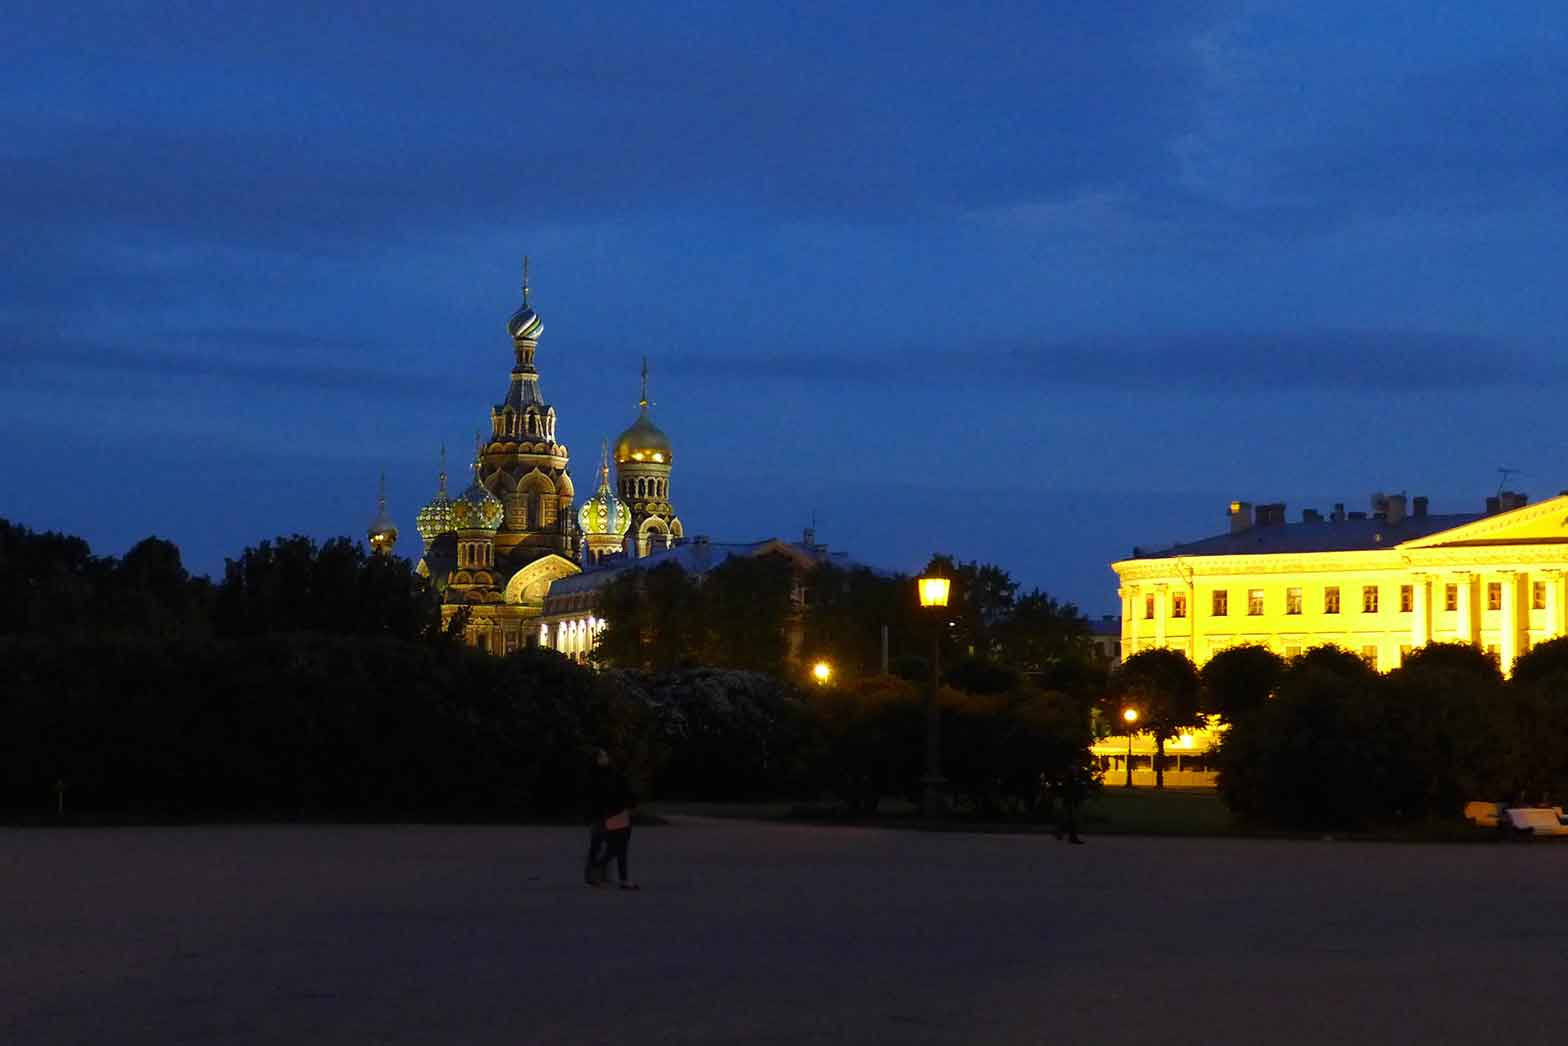 St. Petersburg at night